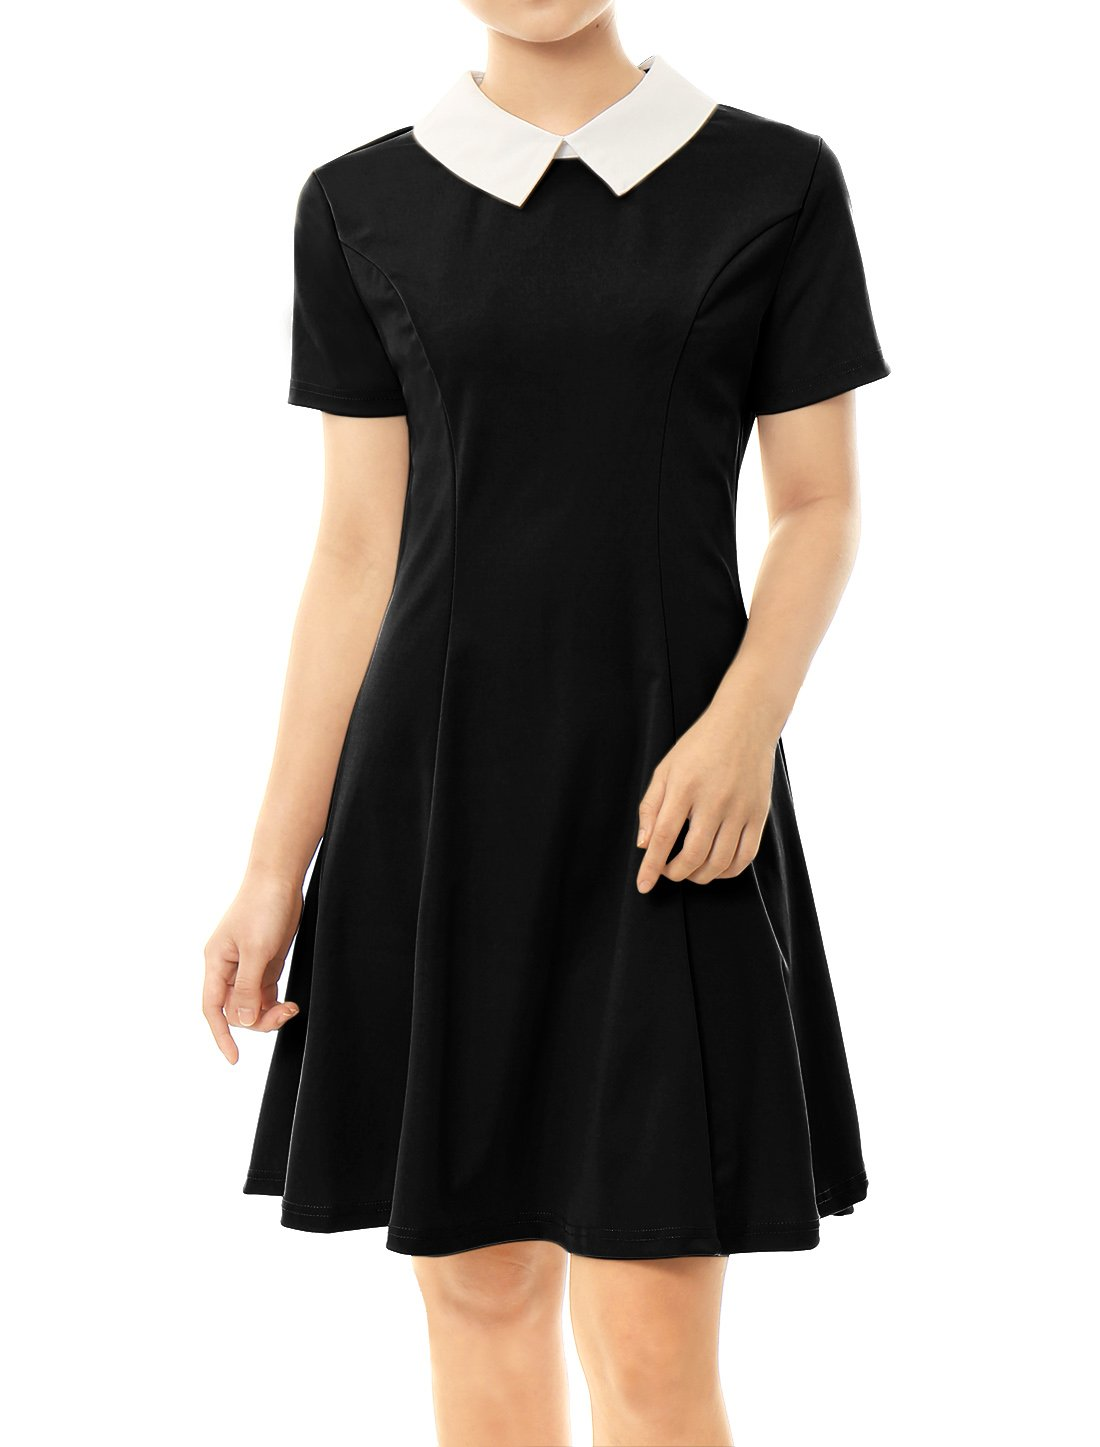 Allegra K Women's Peter Pan Collar Short Sleeves Skater Dress XS Black